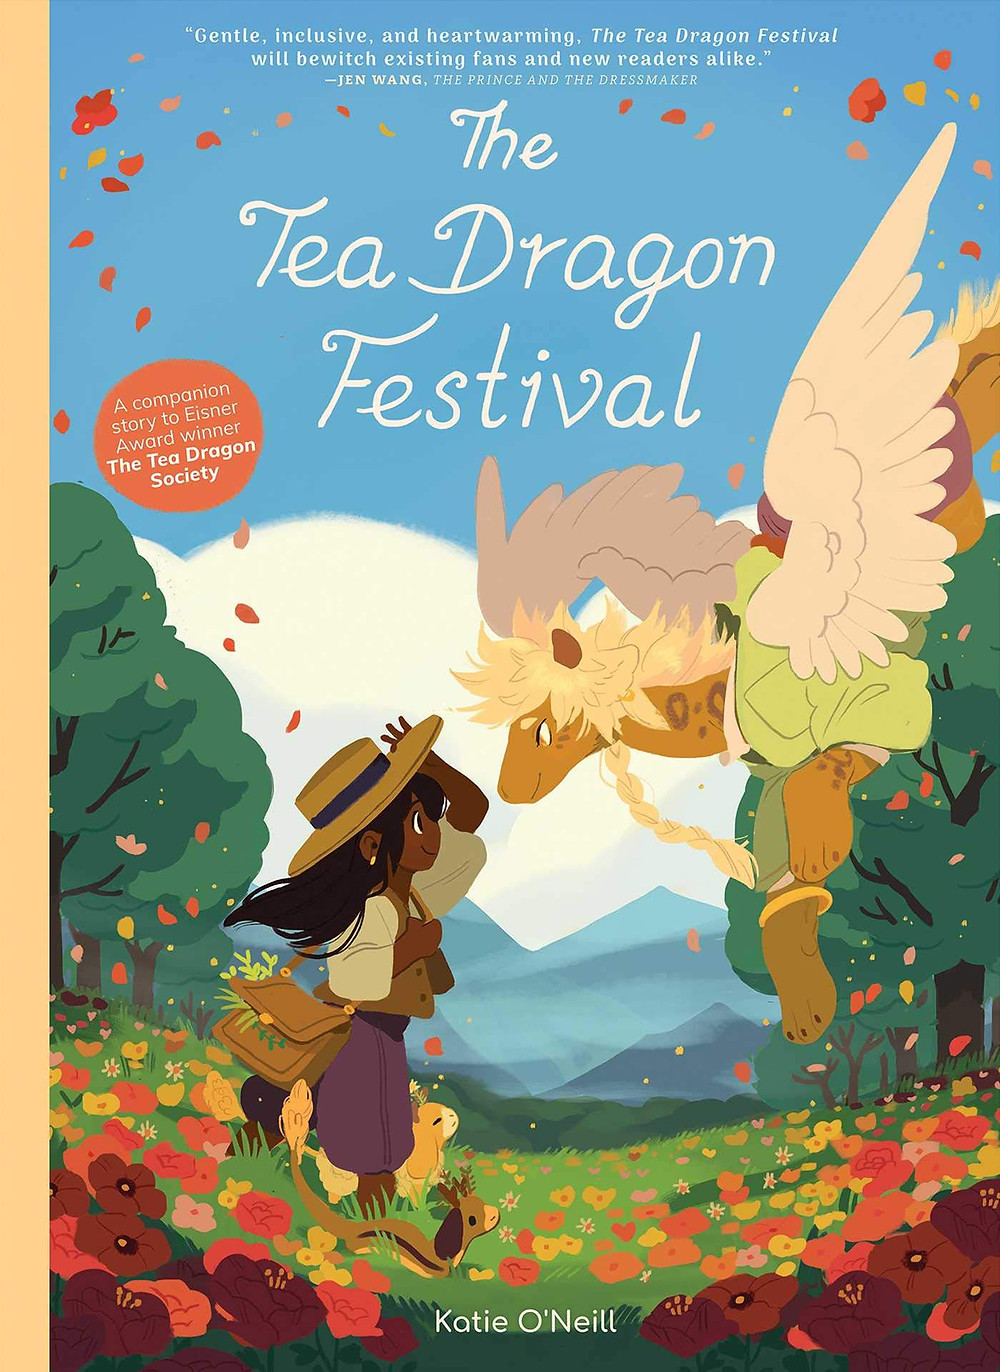 The Tea Dragon Festival by Katie O'Neill | Top 5